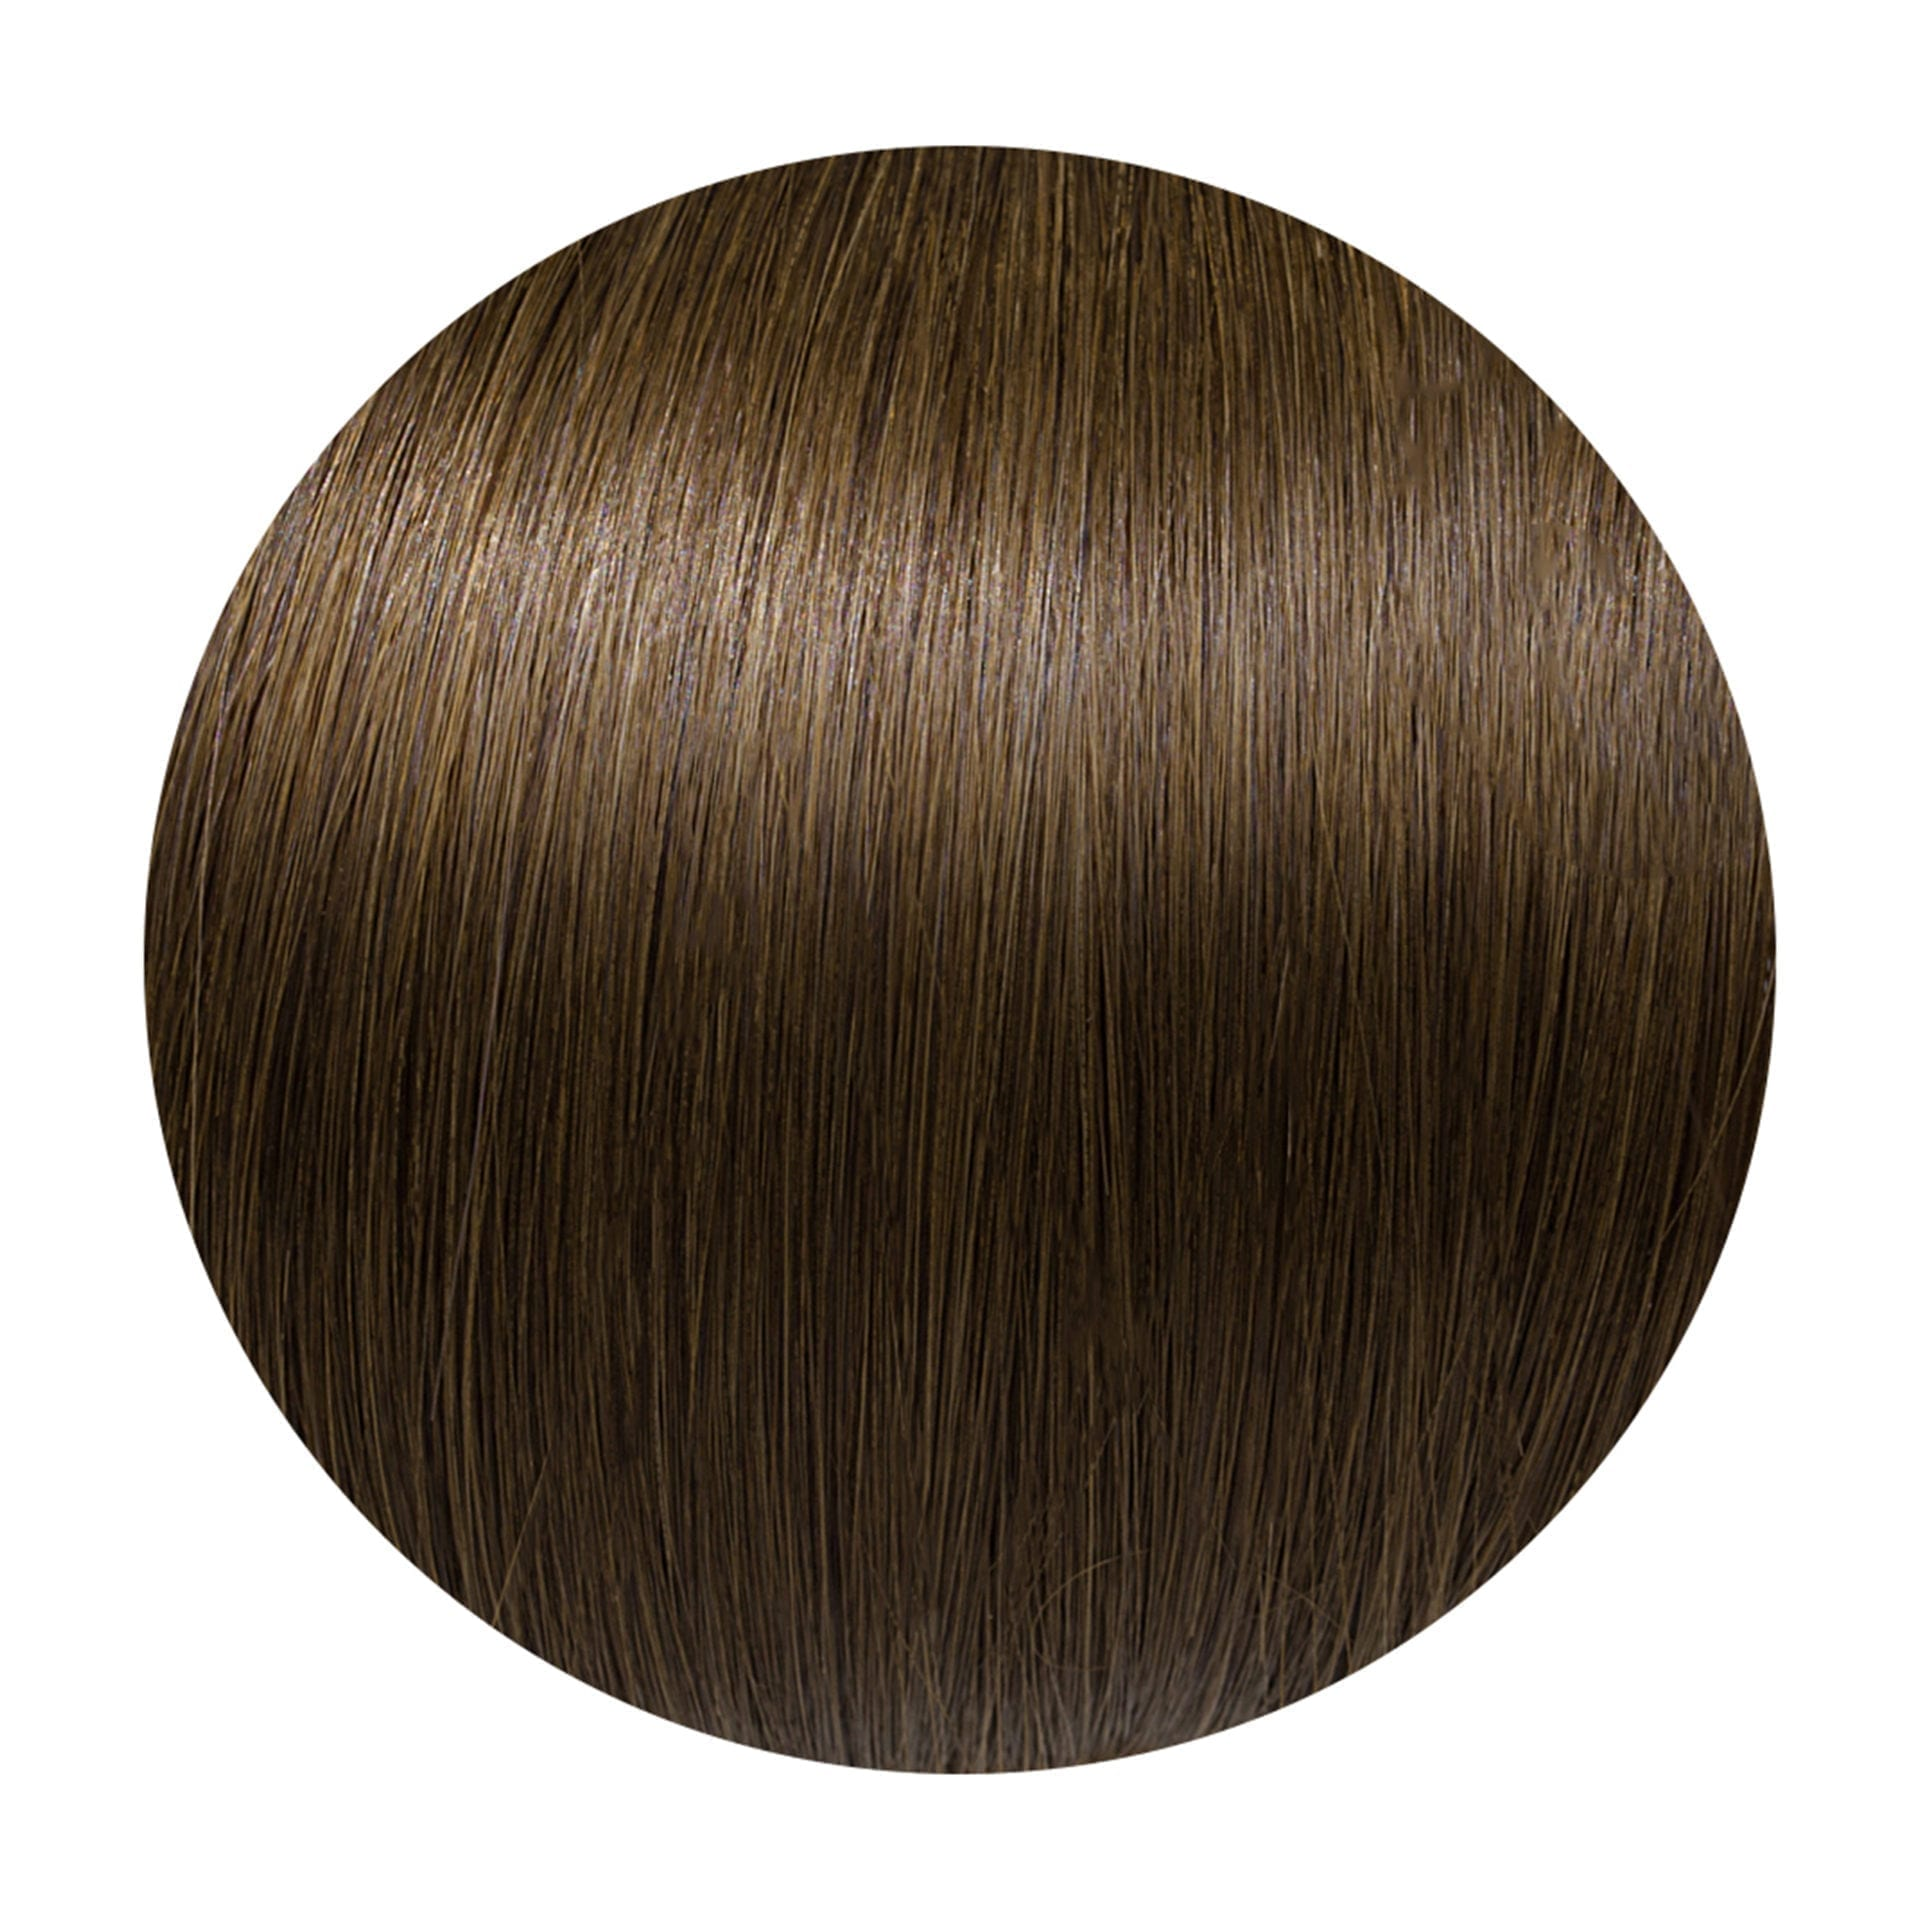 Espresso Natural Wave Tape Hair Extensions Ultimate 21.5-22 Inches